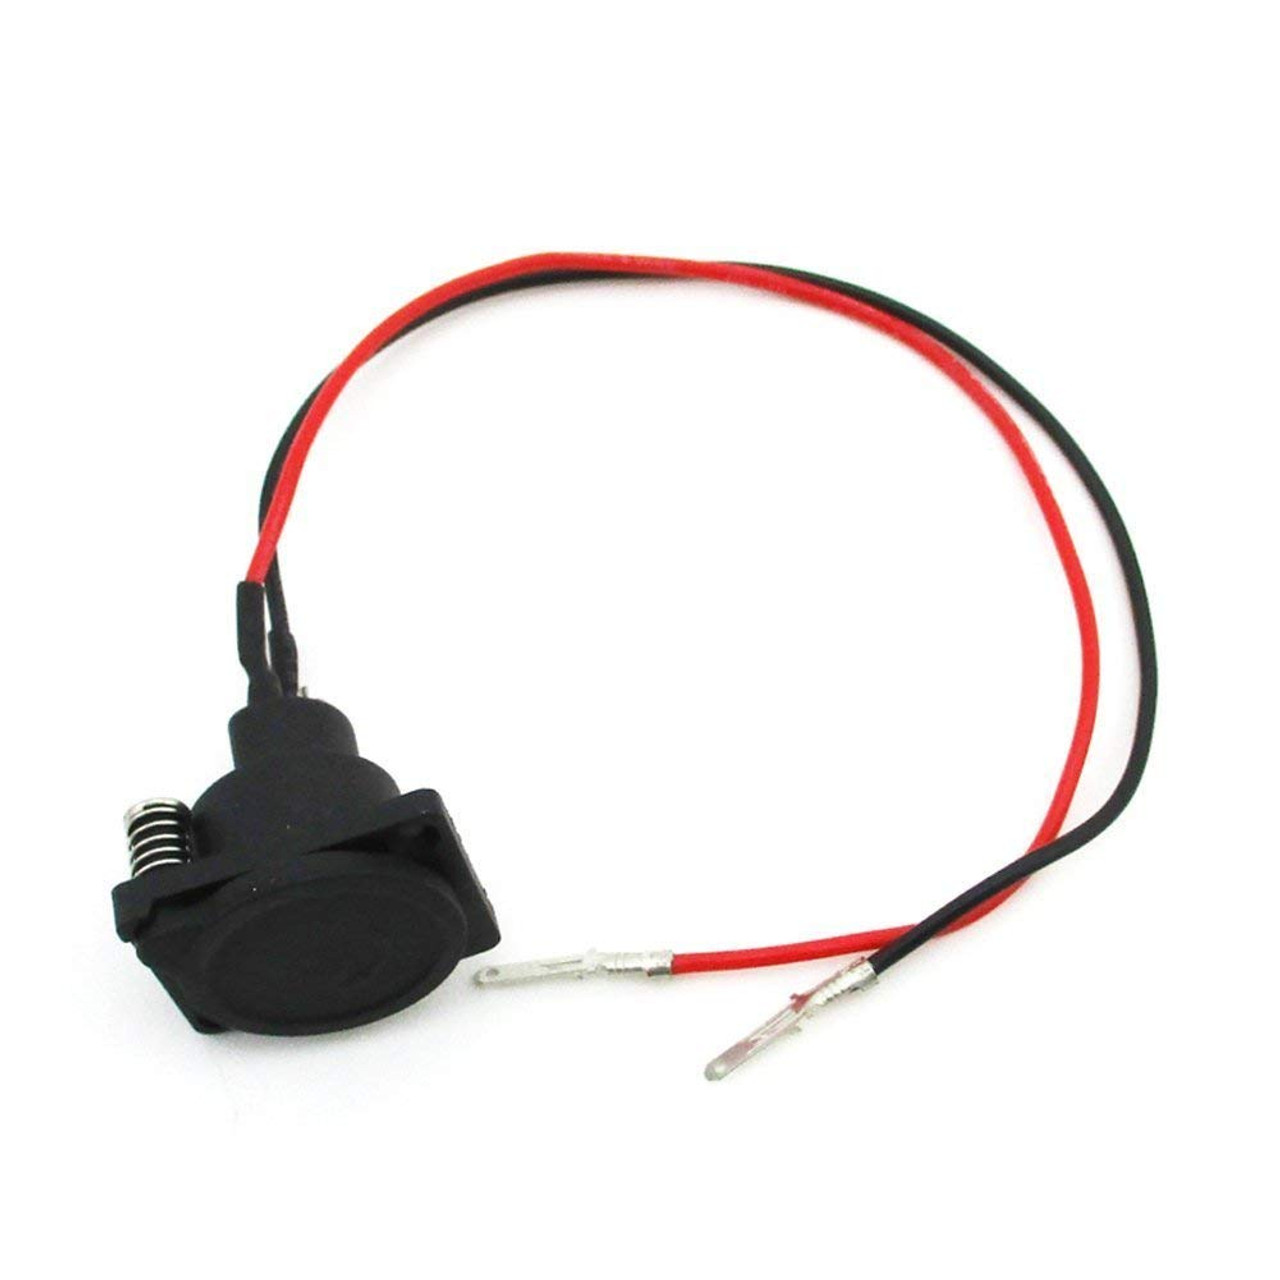 3 pole Battery input charger port